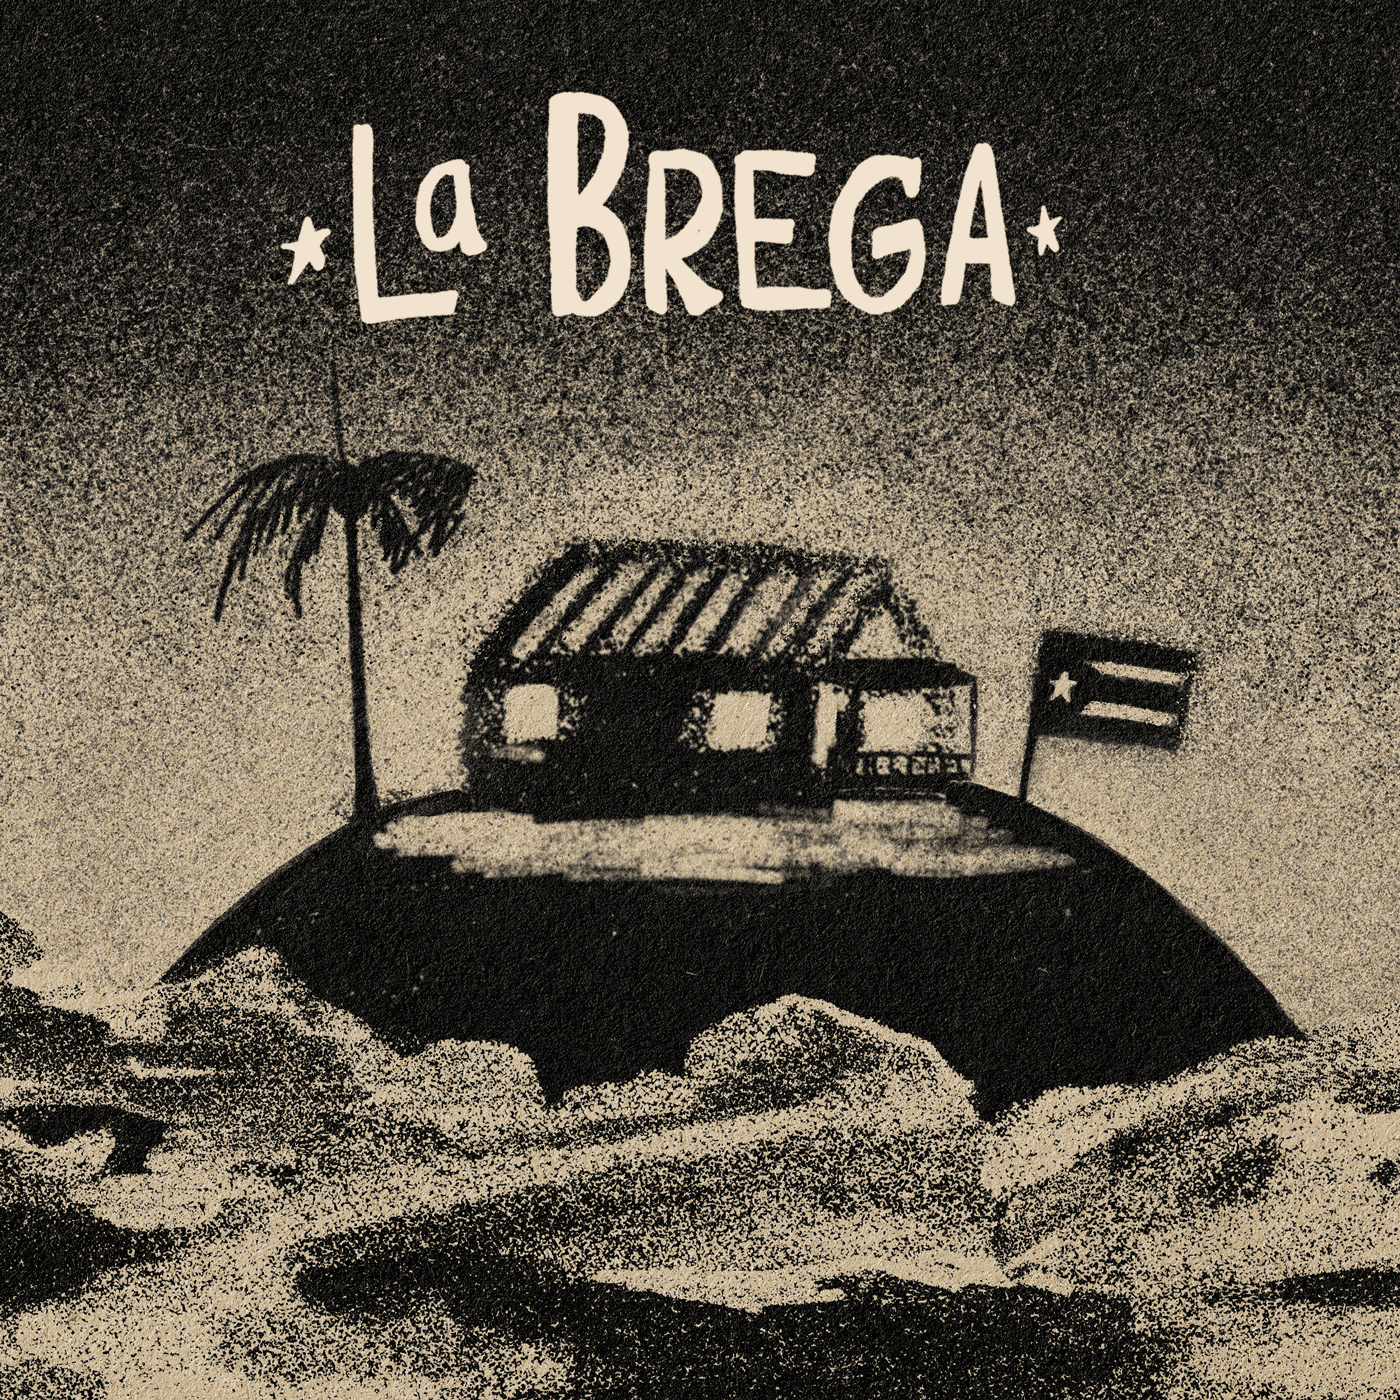 La Brega: Stories of the Puerto Rican Experience